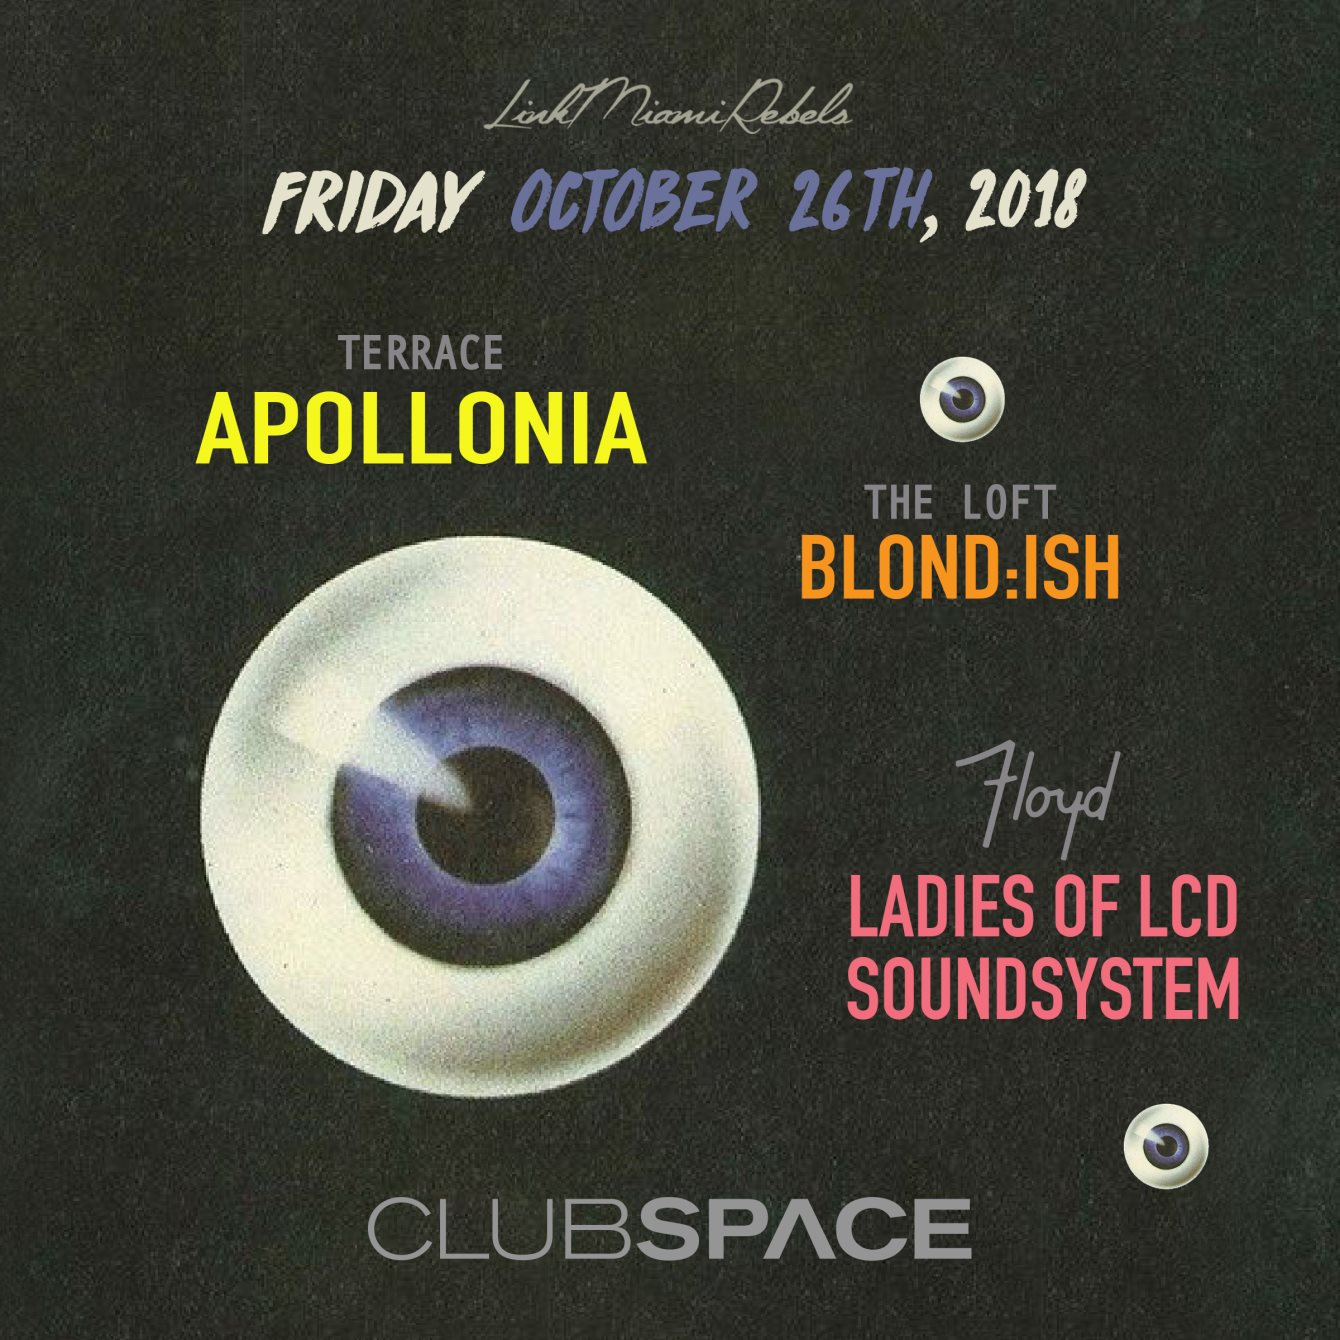 RA: Apollonia on The Space Terrace and Blond:ish at The Loft